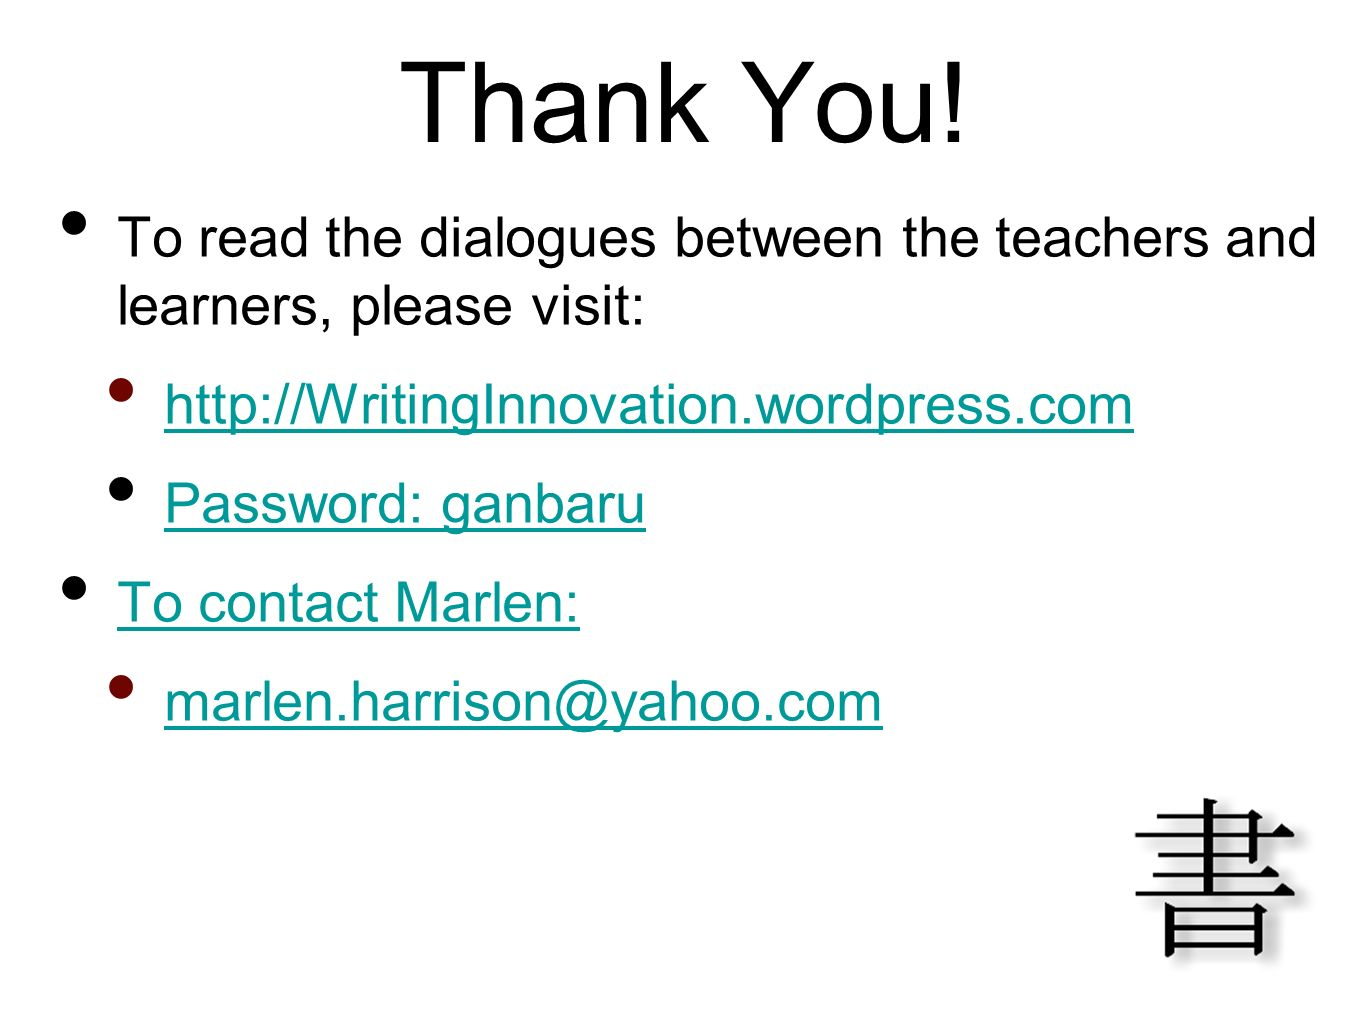 Thank You! To read the dialogues between the teachers and learners, please visit: